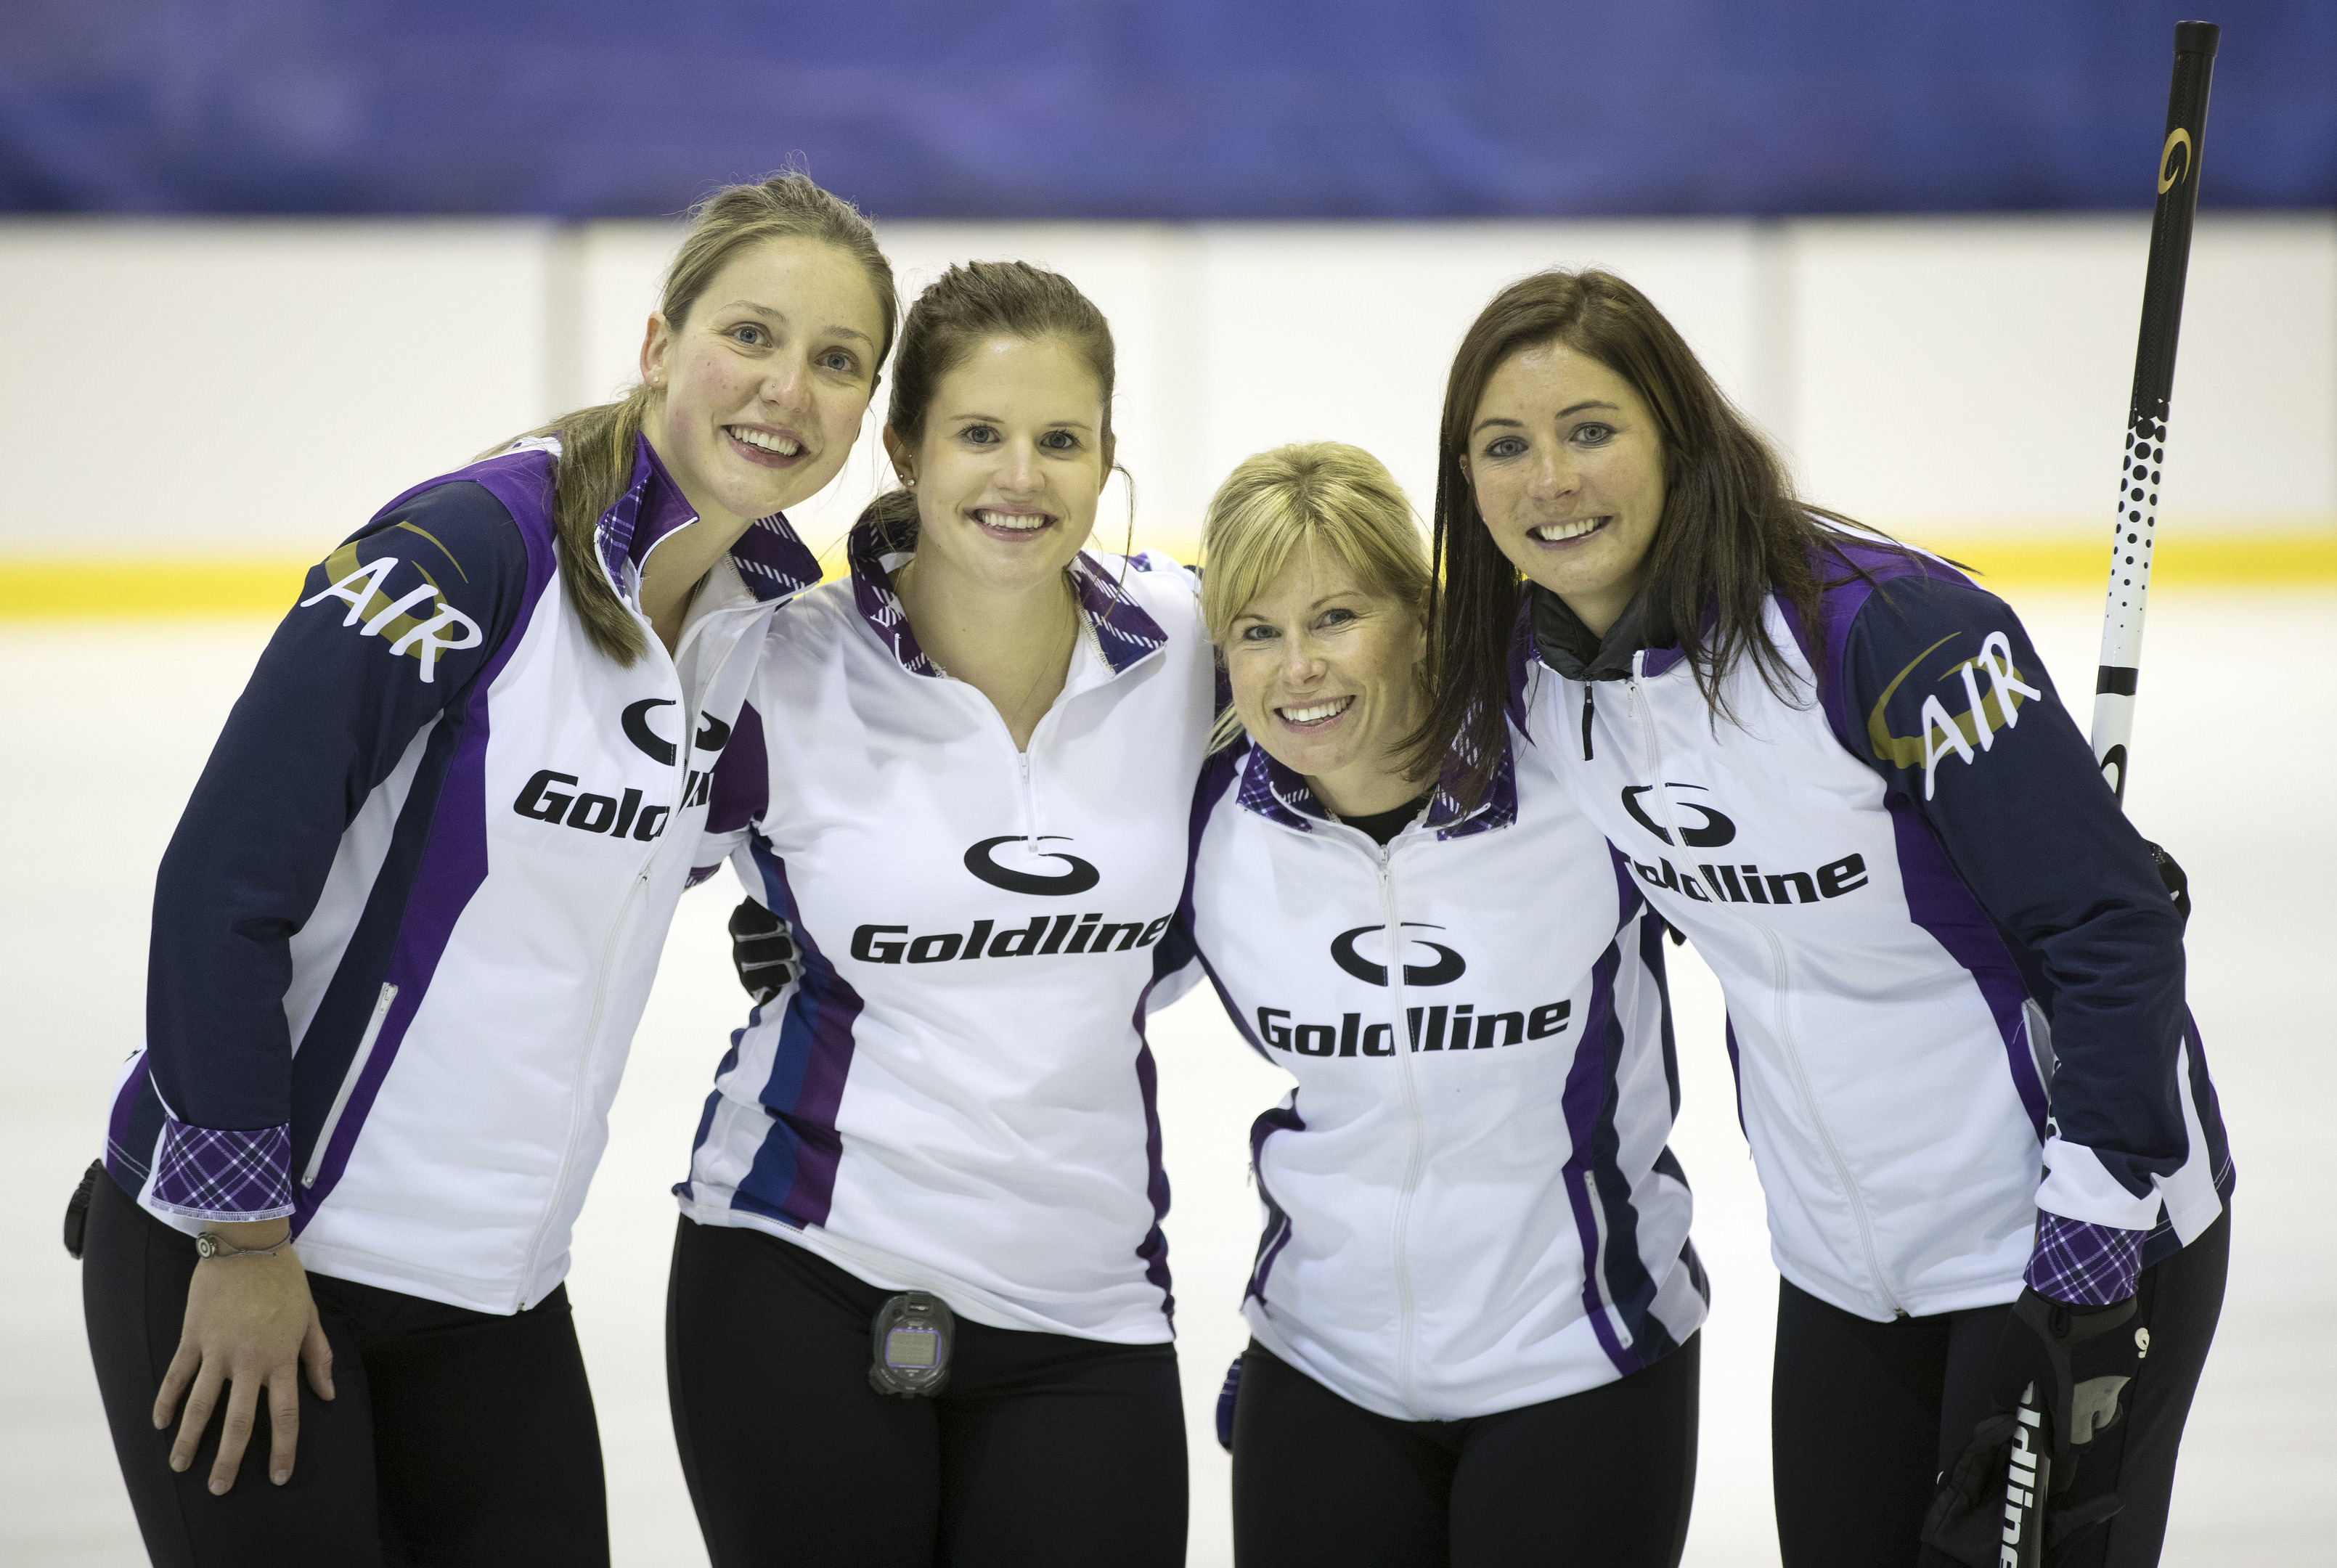 Team Muirhead dealt with the play-downs pressure.